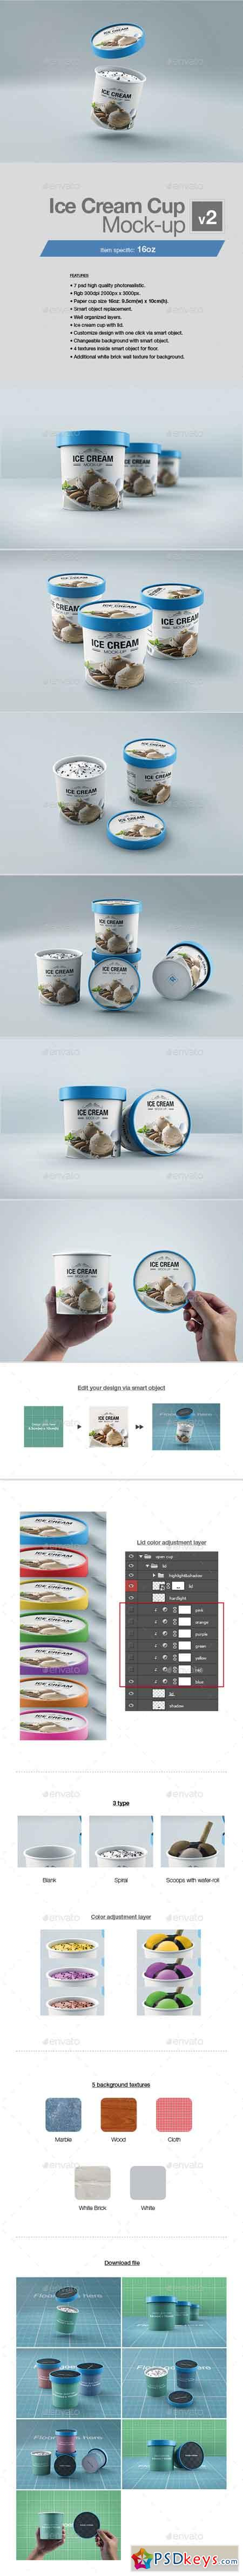 Ice Cream Cup Mock-up v2 22645755